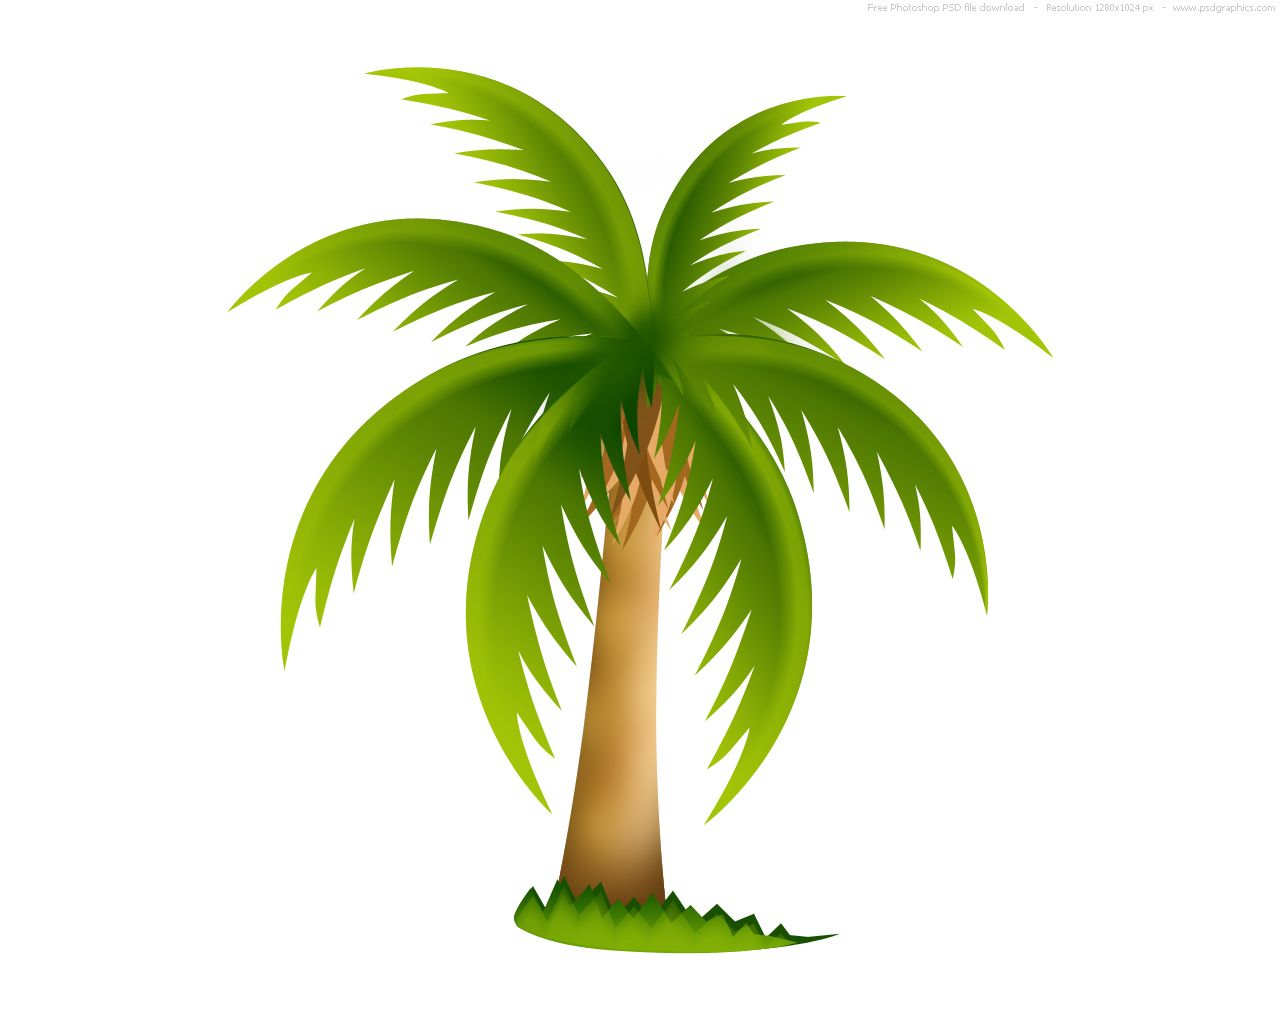 12 Green Palm Leaves Icon Images